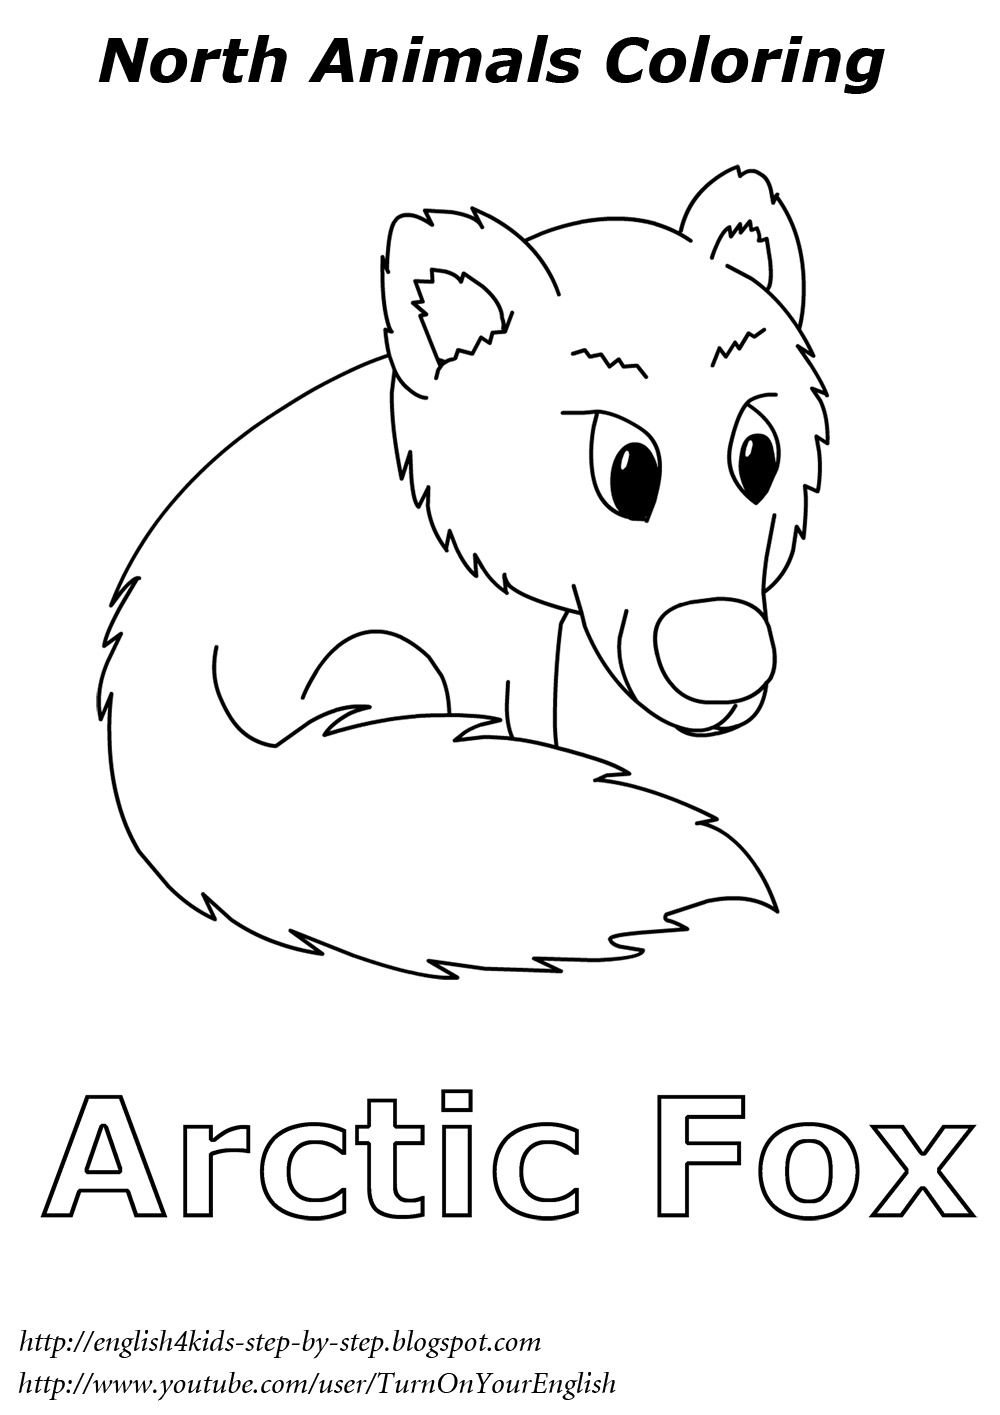 Arctic Fox Coloring For Kids Esl Polar Animals Arctic Animals Arctic Animals For Kids